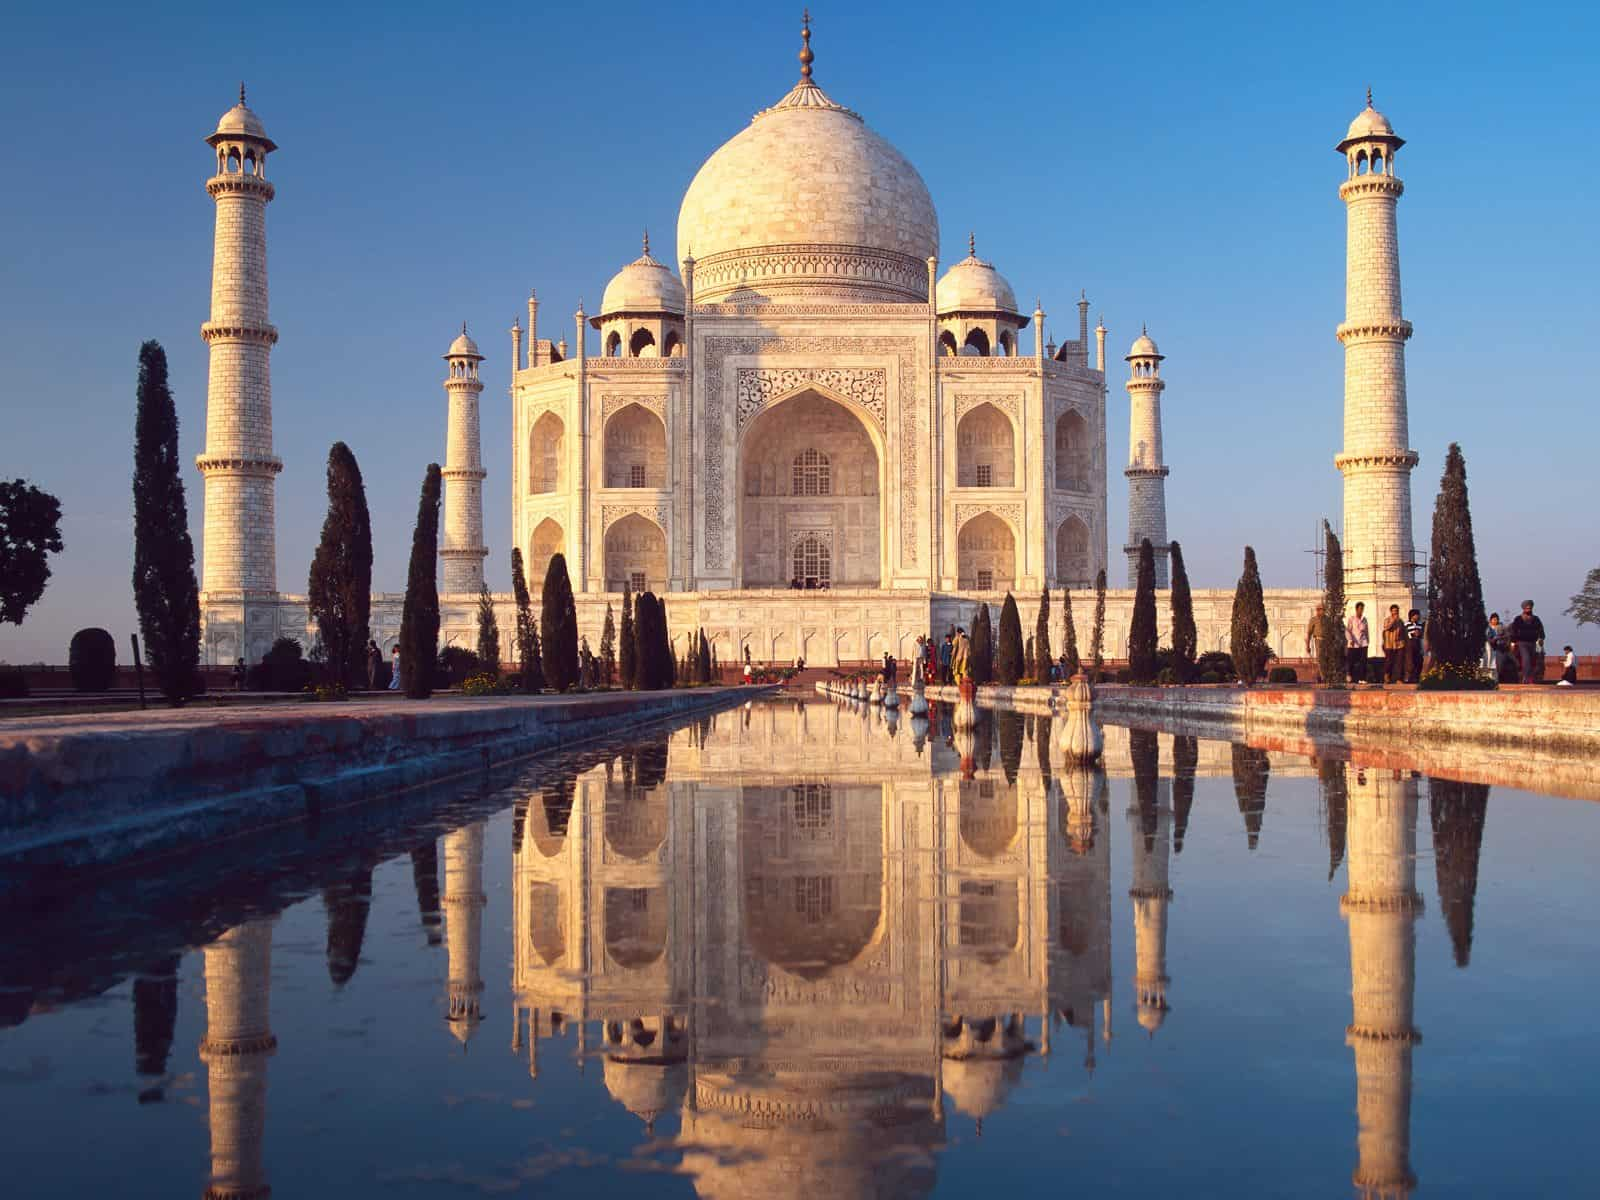 Exclusive-Escapes-Goa-India-Taj-Mahal-India-Map-Trip-To-India-Bangalore-India-Travel-To-India-Luxury-Travel-Magazine-Beverly-Hills-Magazine-1